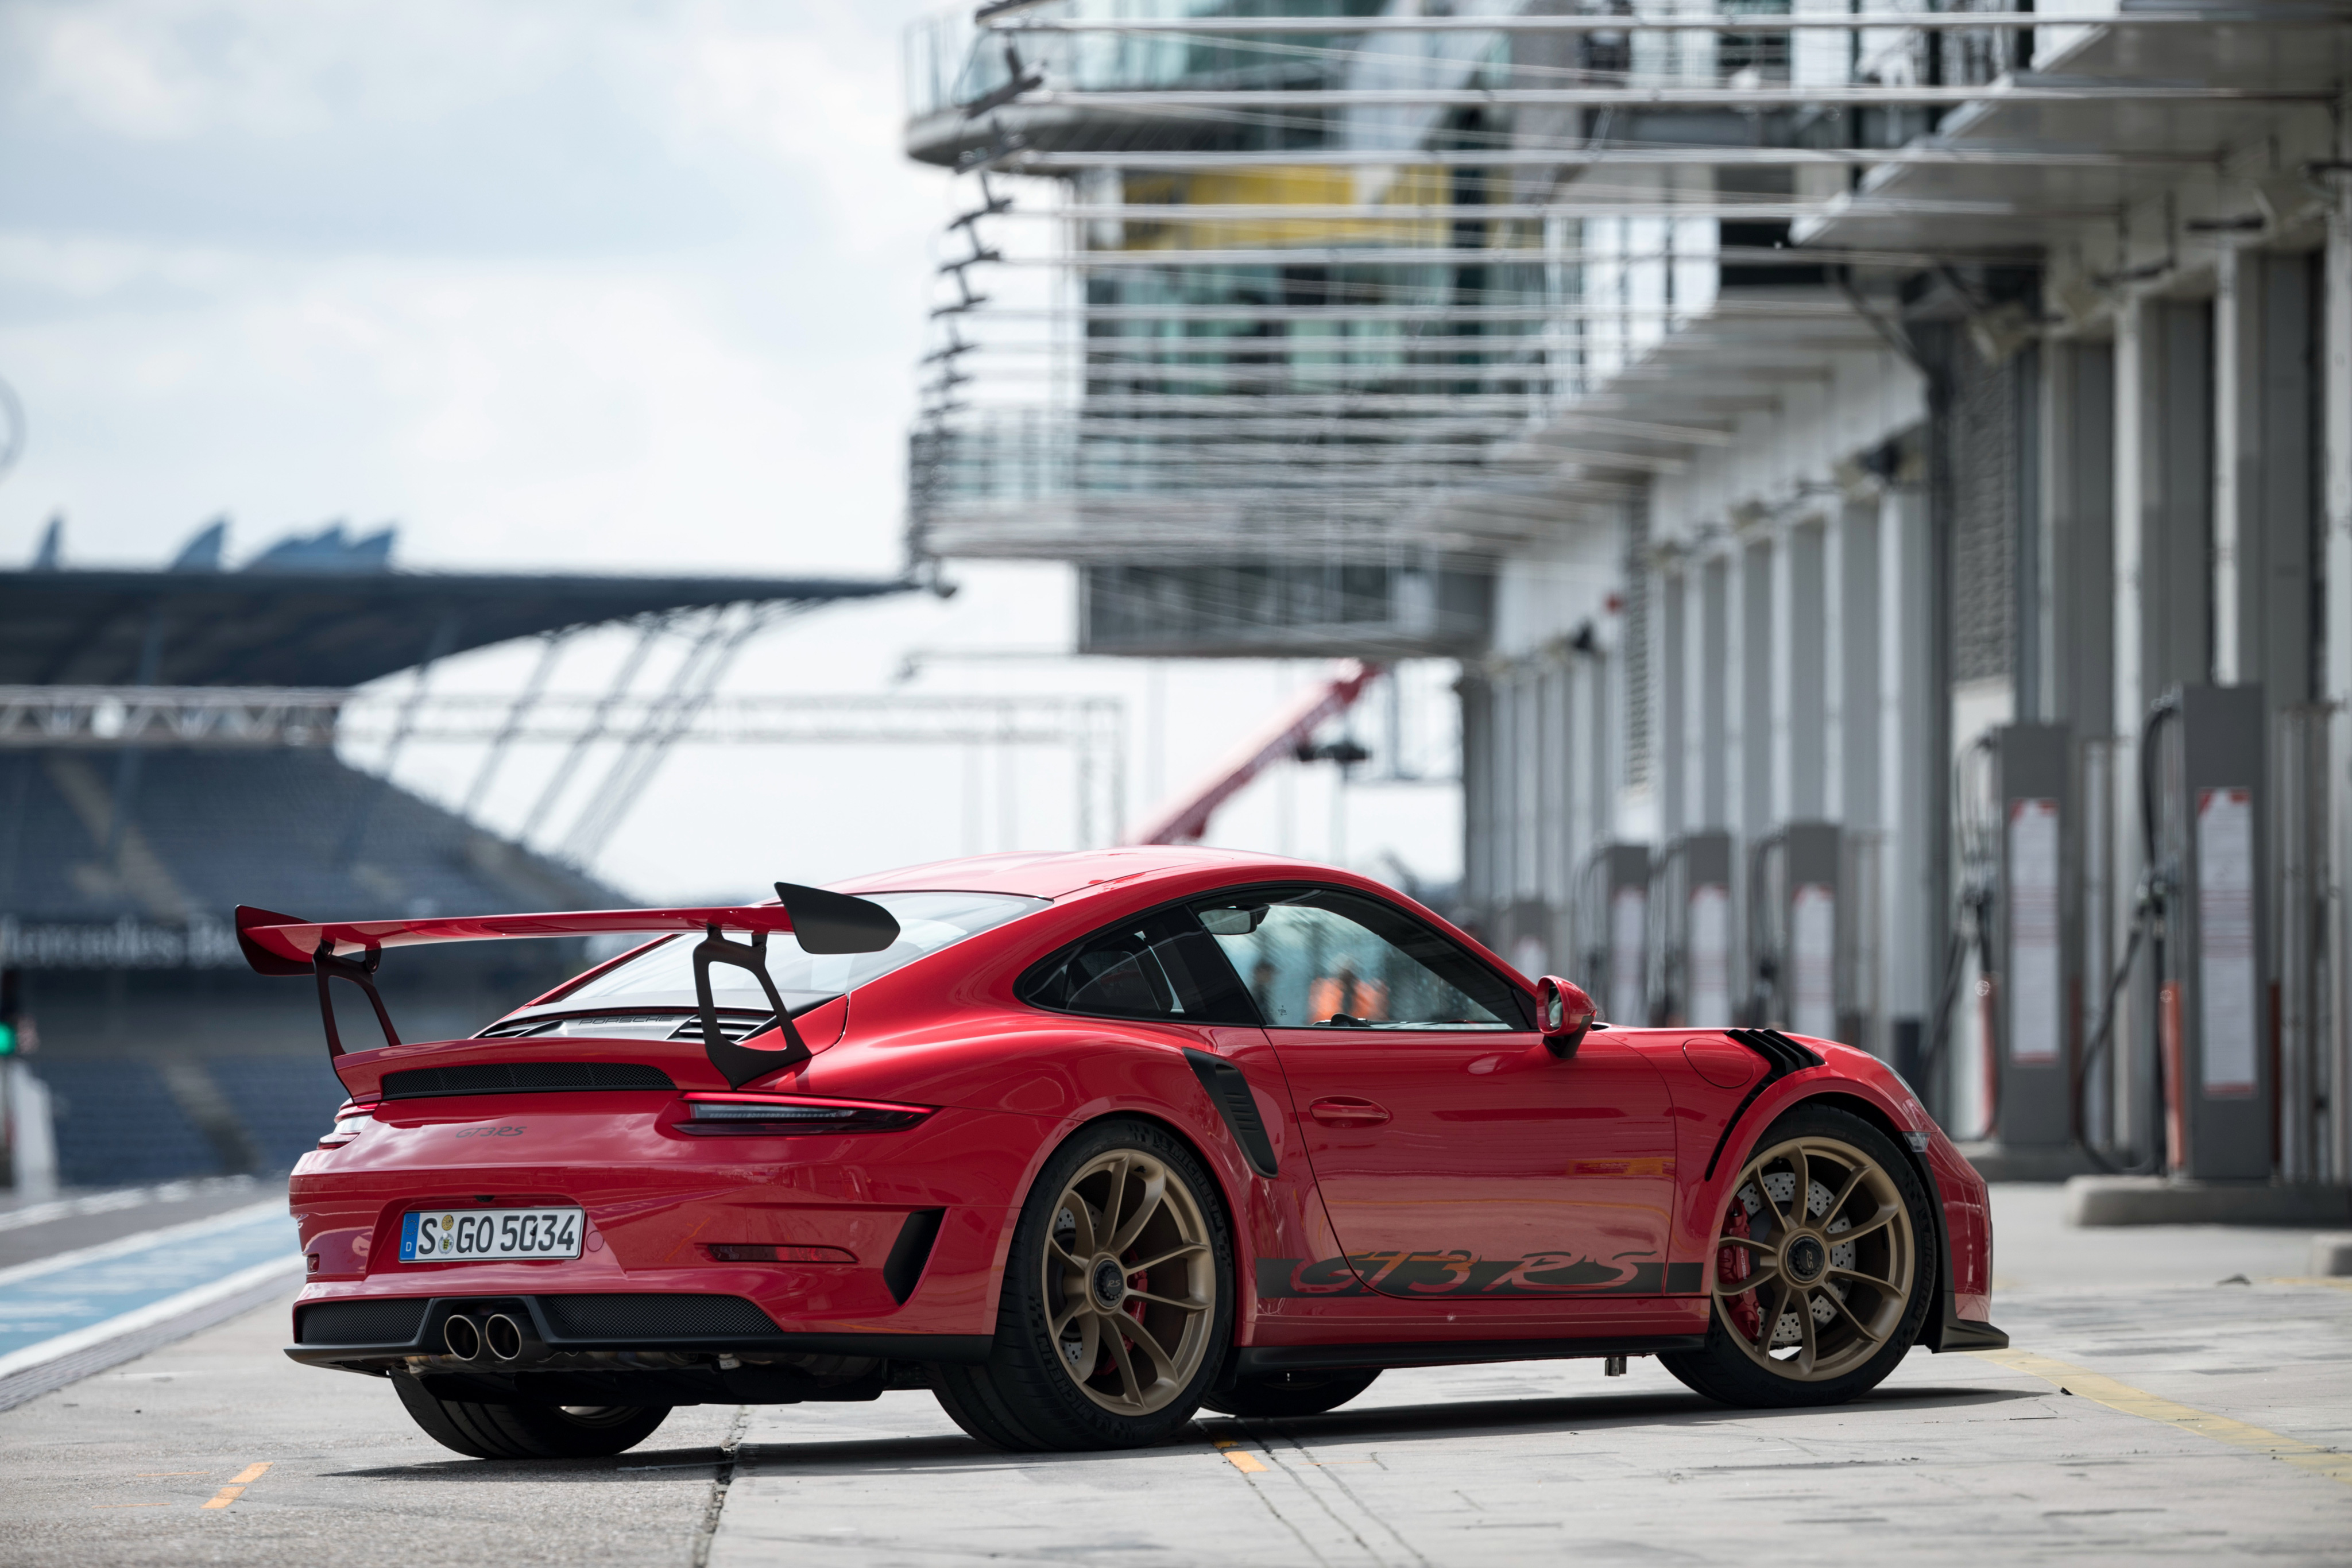 1920x1080 Porsche 911 Gt3 Rs 4k Laptop Full Hd 1080p Hd 4k Wallpapers Images Backgrounds Photos And Pictures